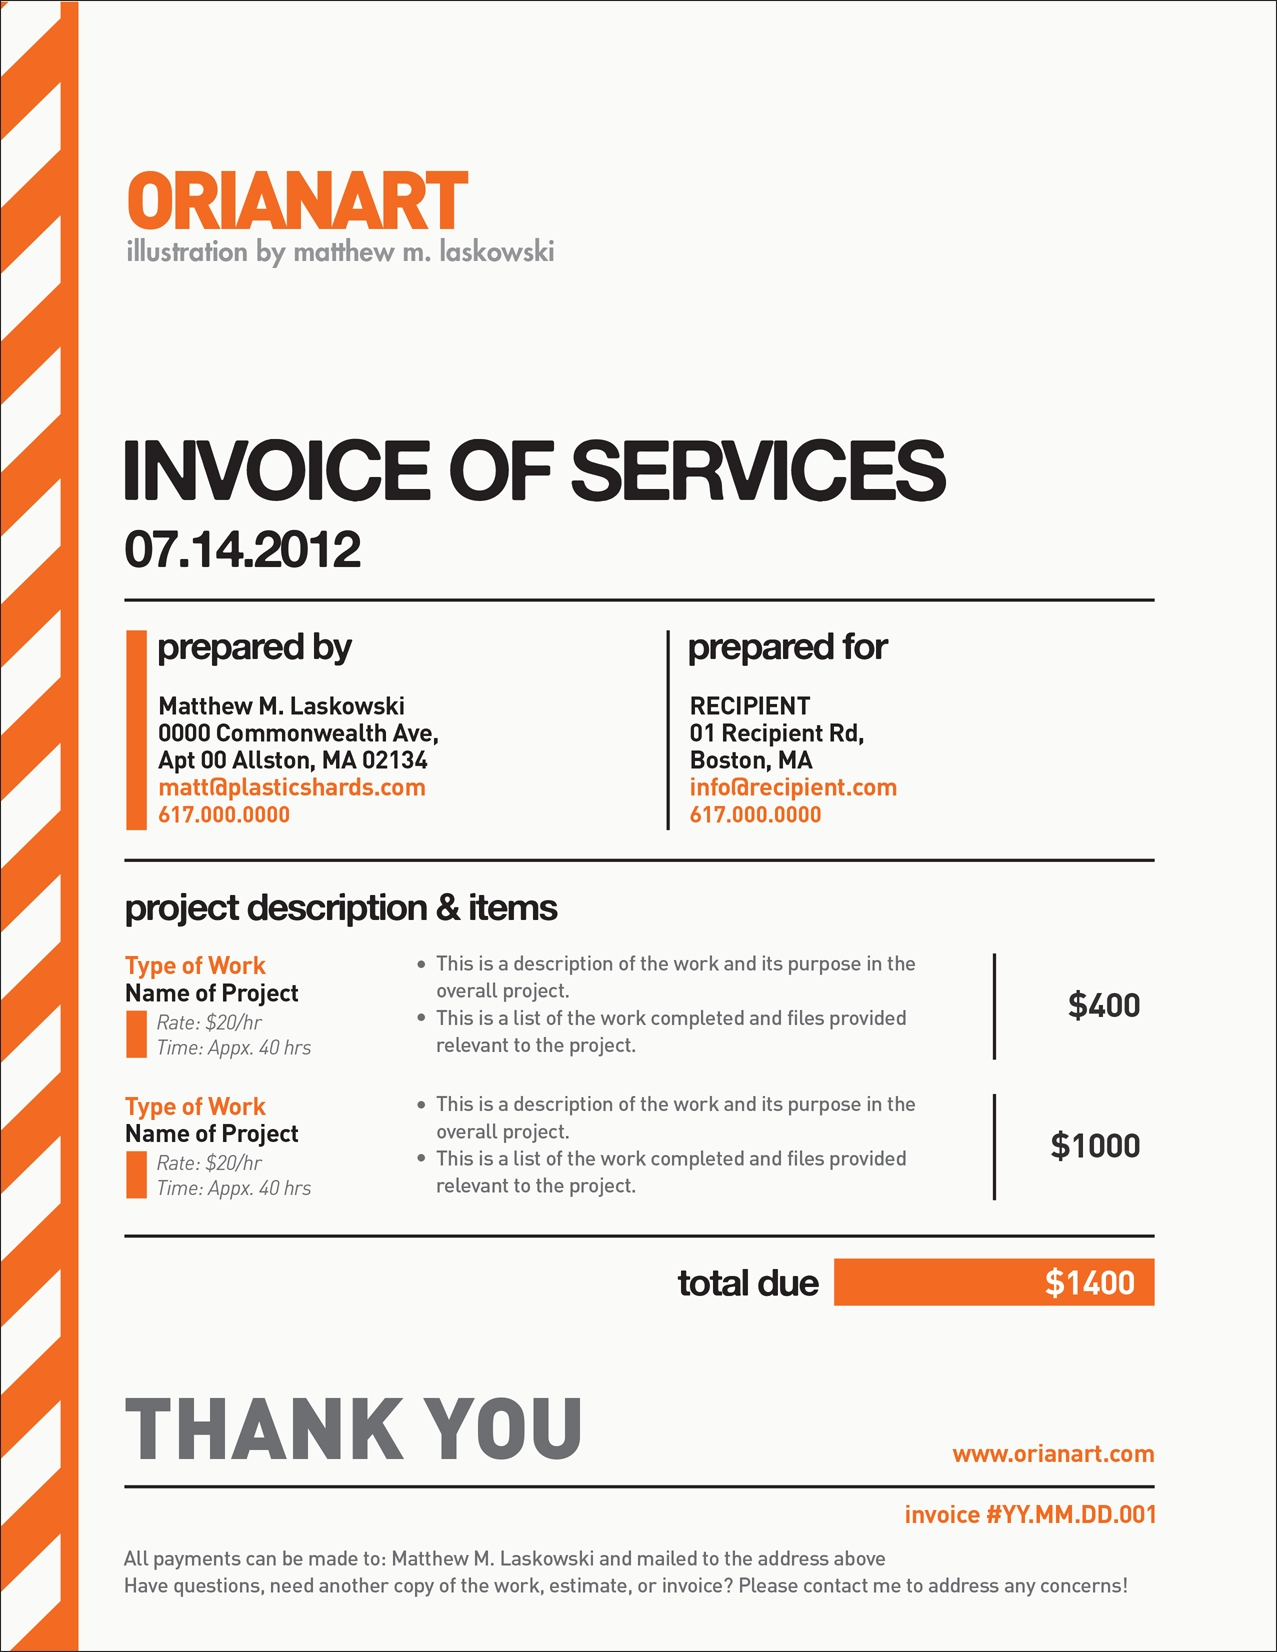 graphic design invoice template graphic design freelance invoice freelance designer invoice template